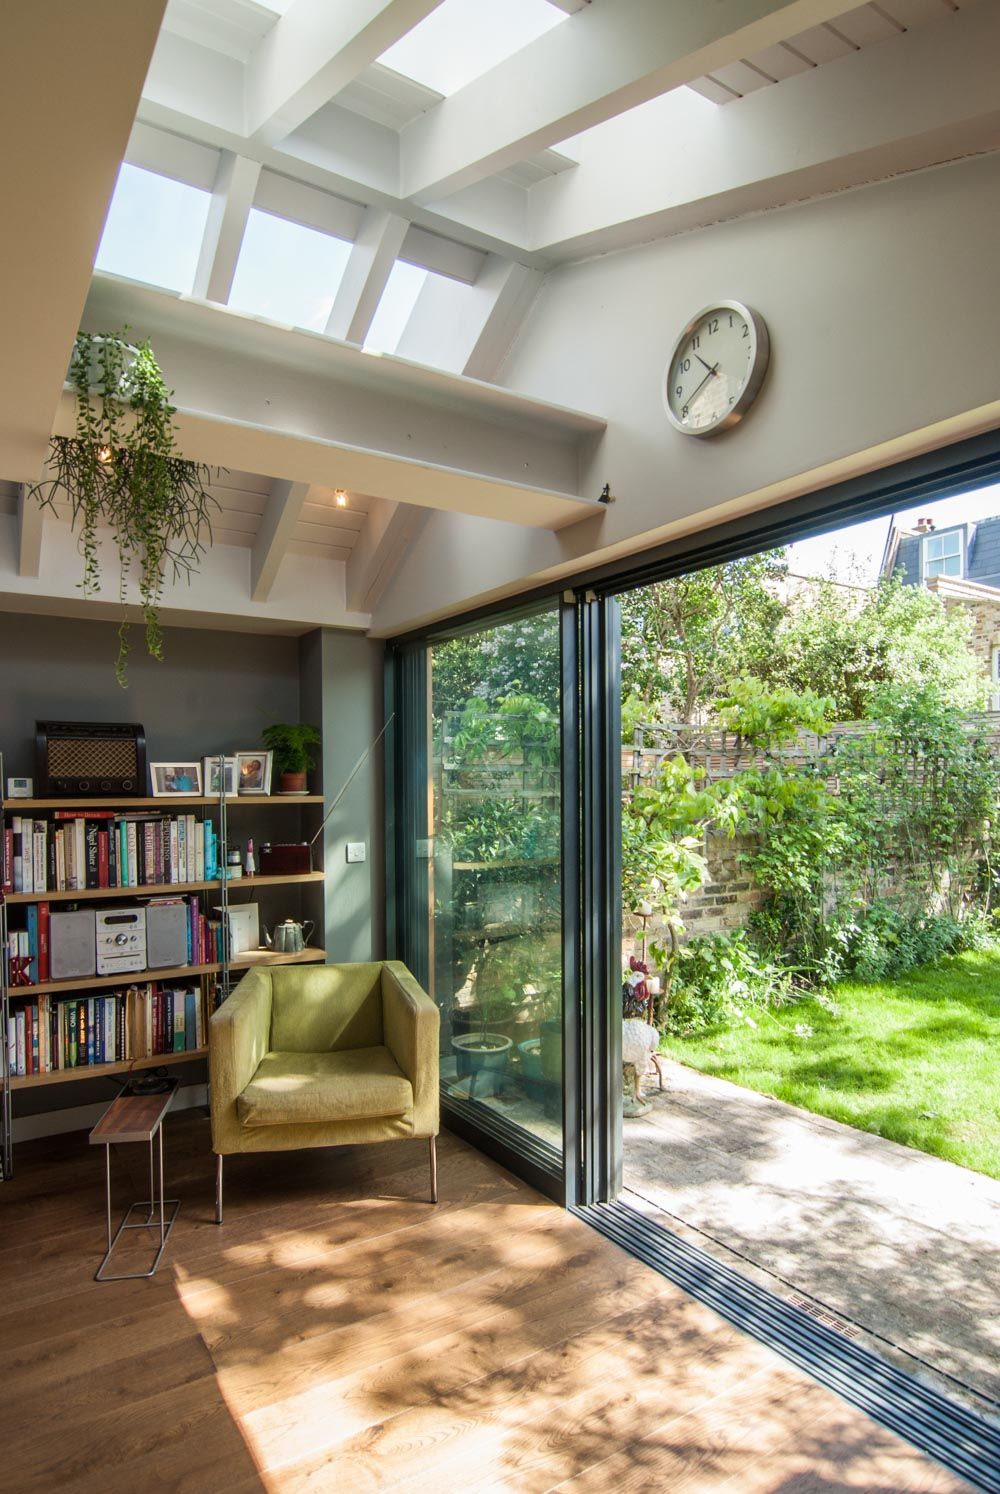 Roof lights overlooking a peaceful reading corner next to the scenic garden view.